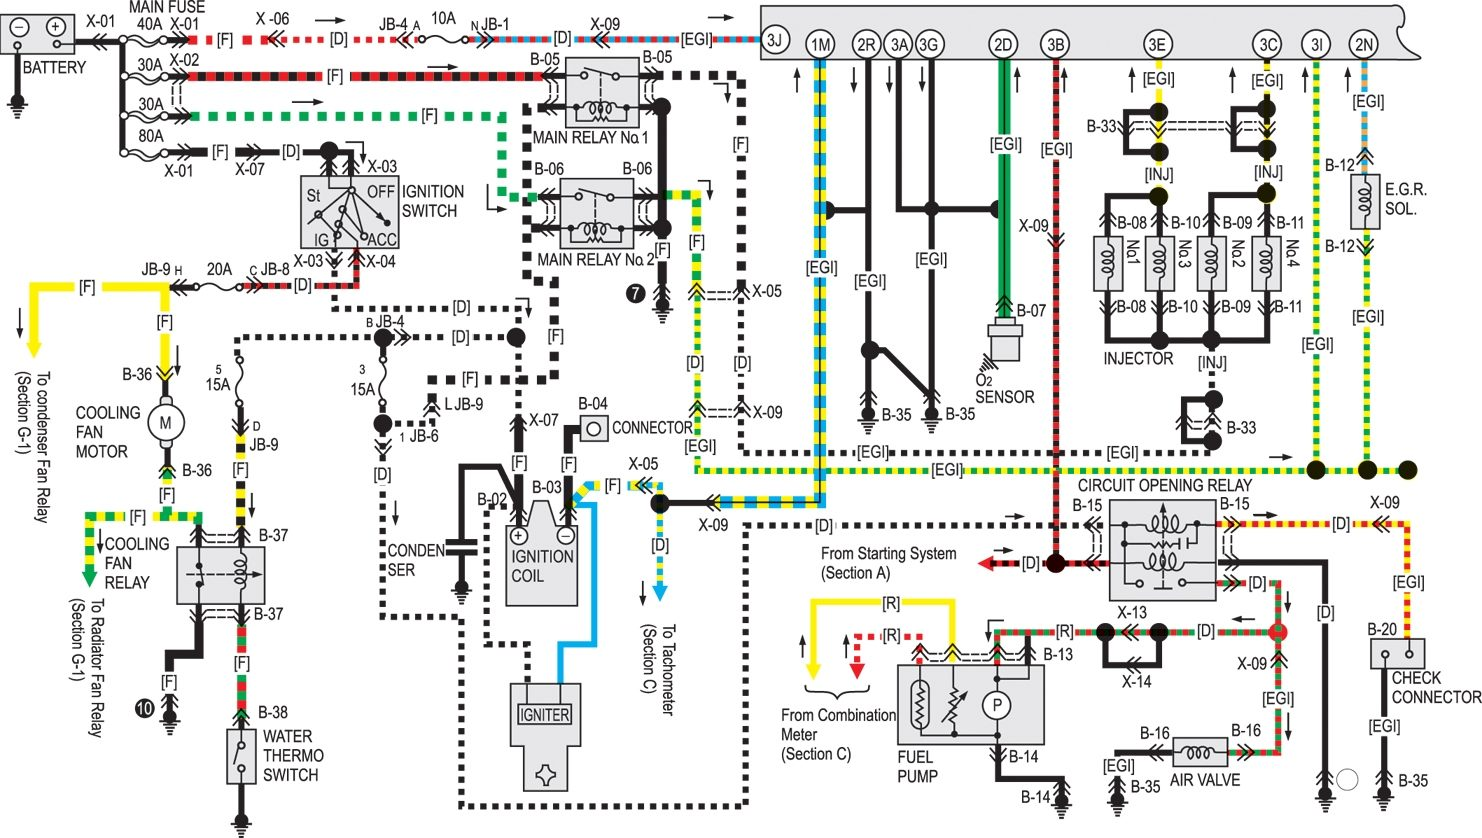 2005 Mazda 6 Wiring Diagram Auto Electrical 03 Engine Cooling